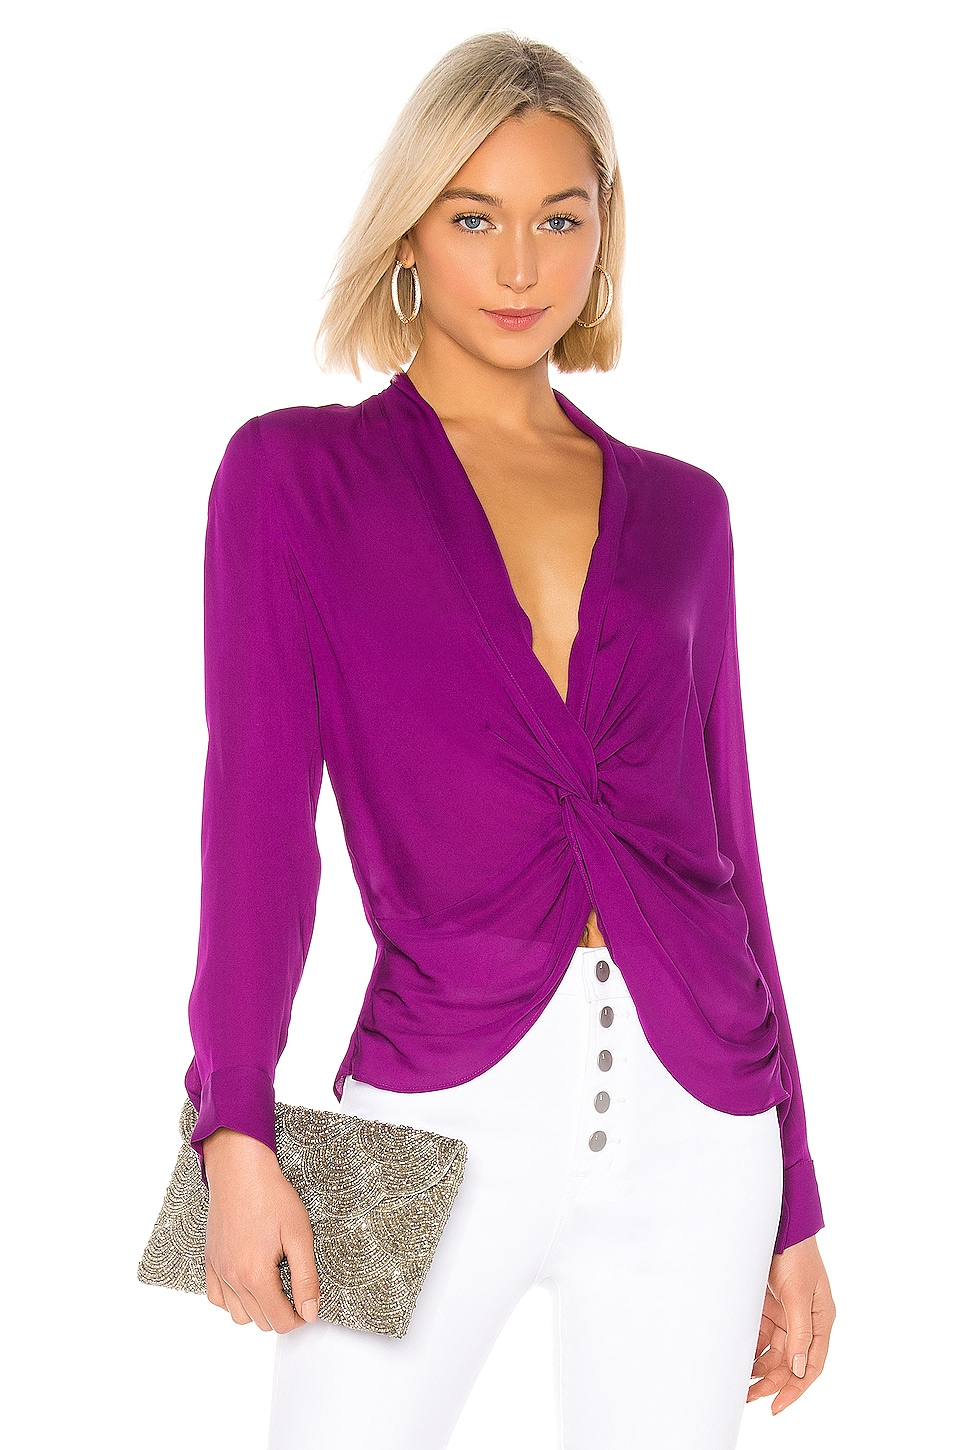 L'AGENCE Mariposa Blouse in Bright Plum